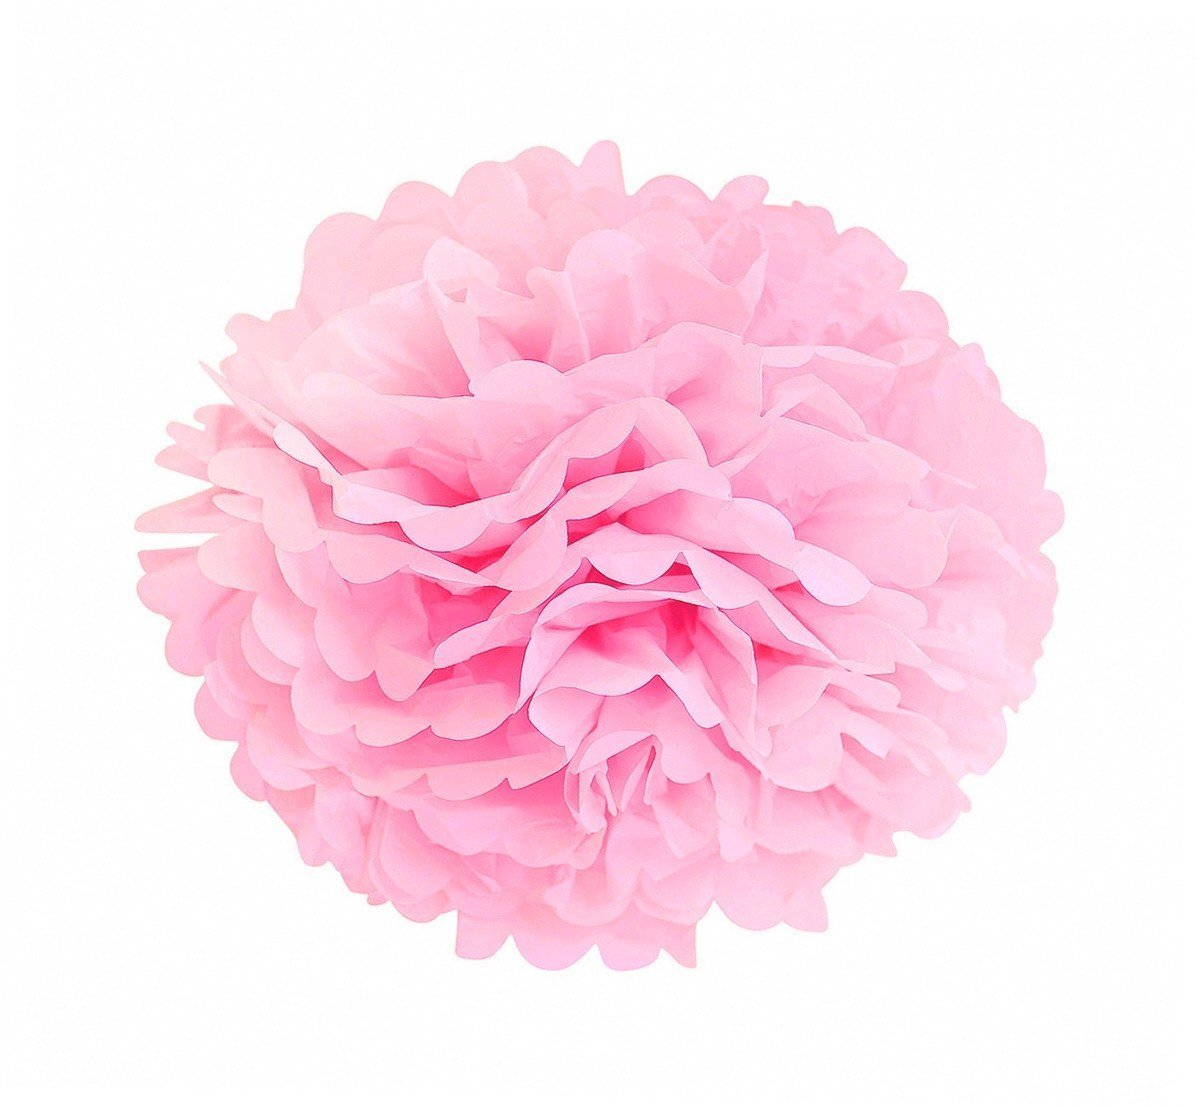 Daily Mall Diy Tissue Paper Flower 10pcs 8 Inch 10 Inch Decorative